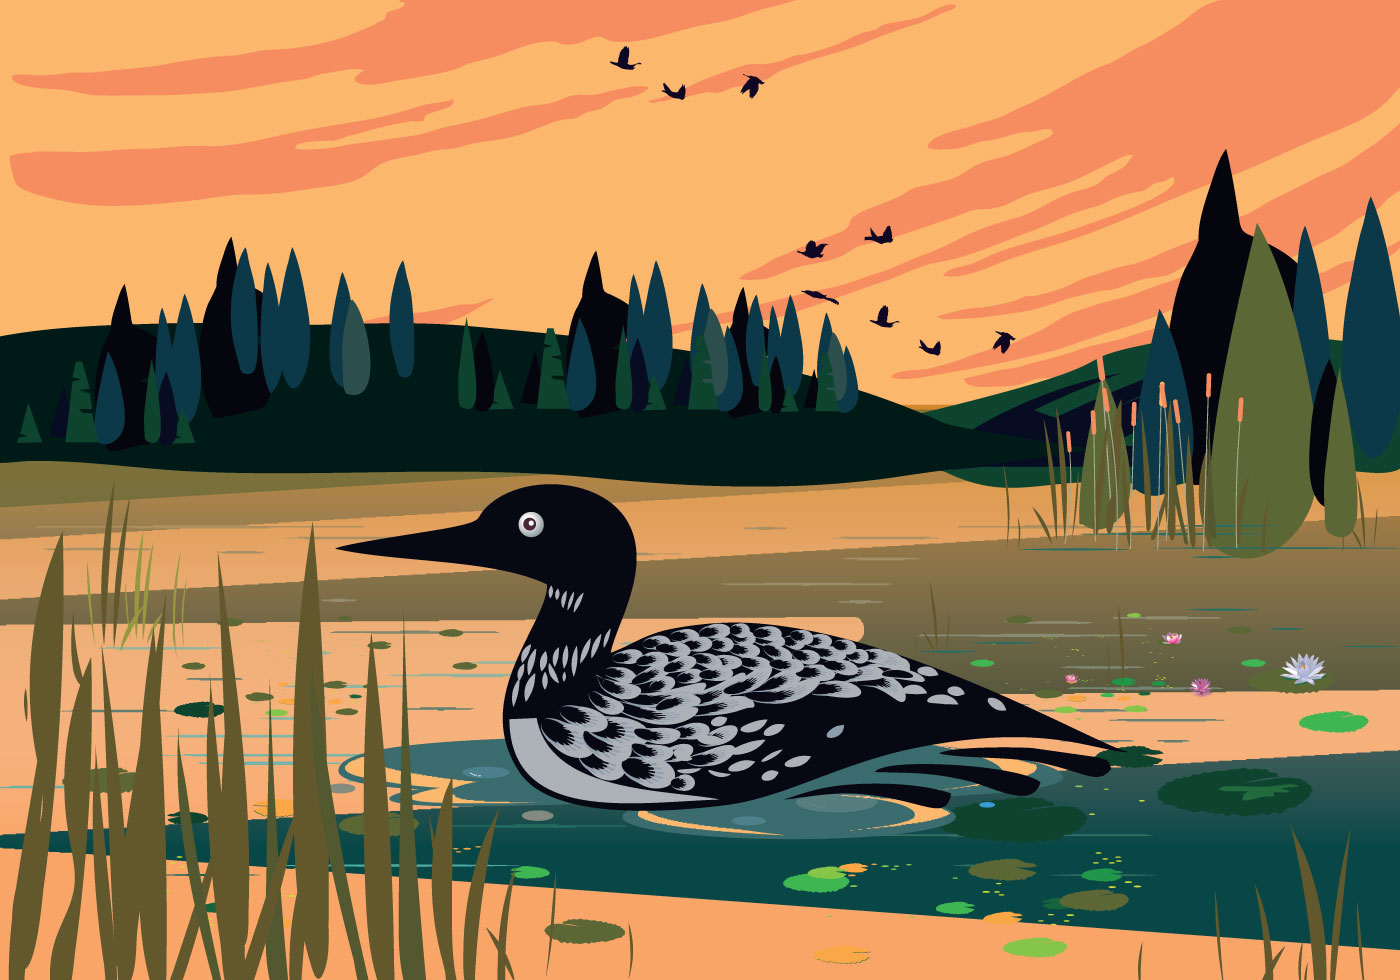 Black Textured Wallpaper Loon Swimming In Lake Vector Background Illustration